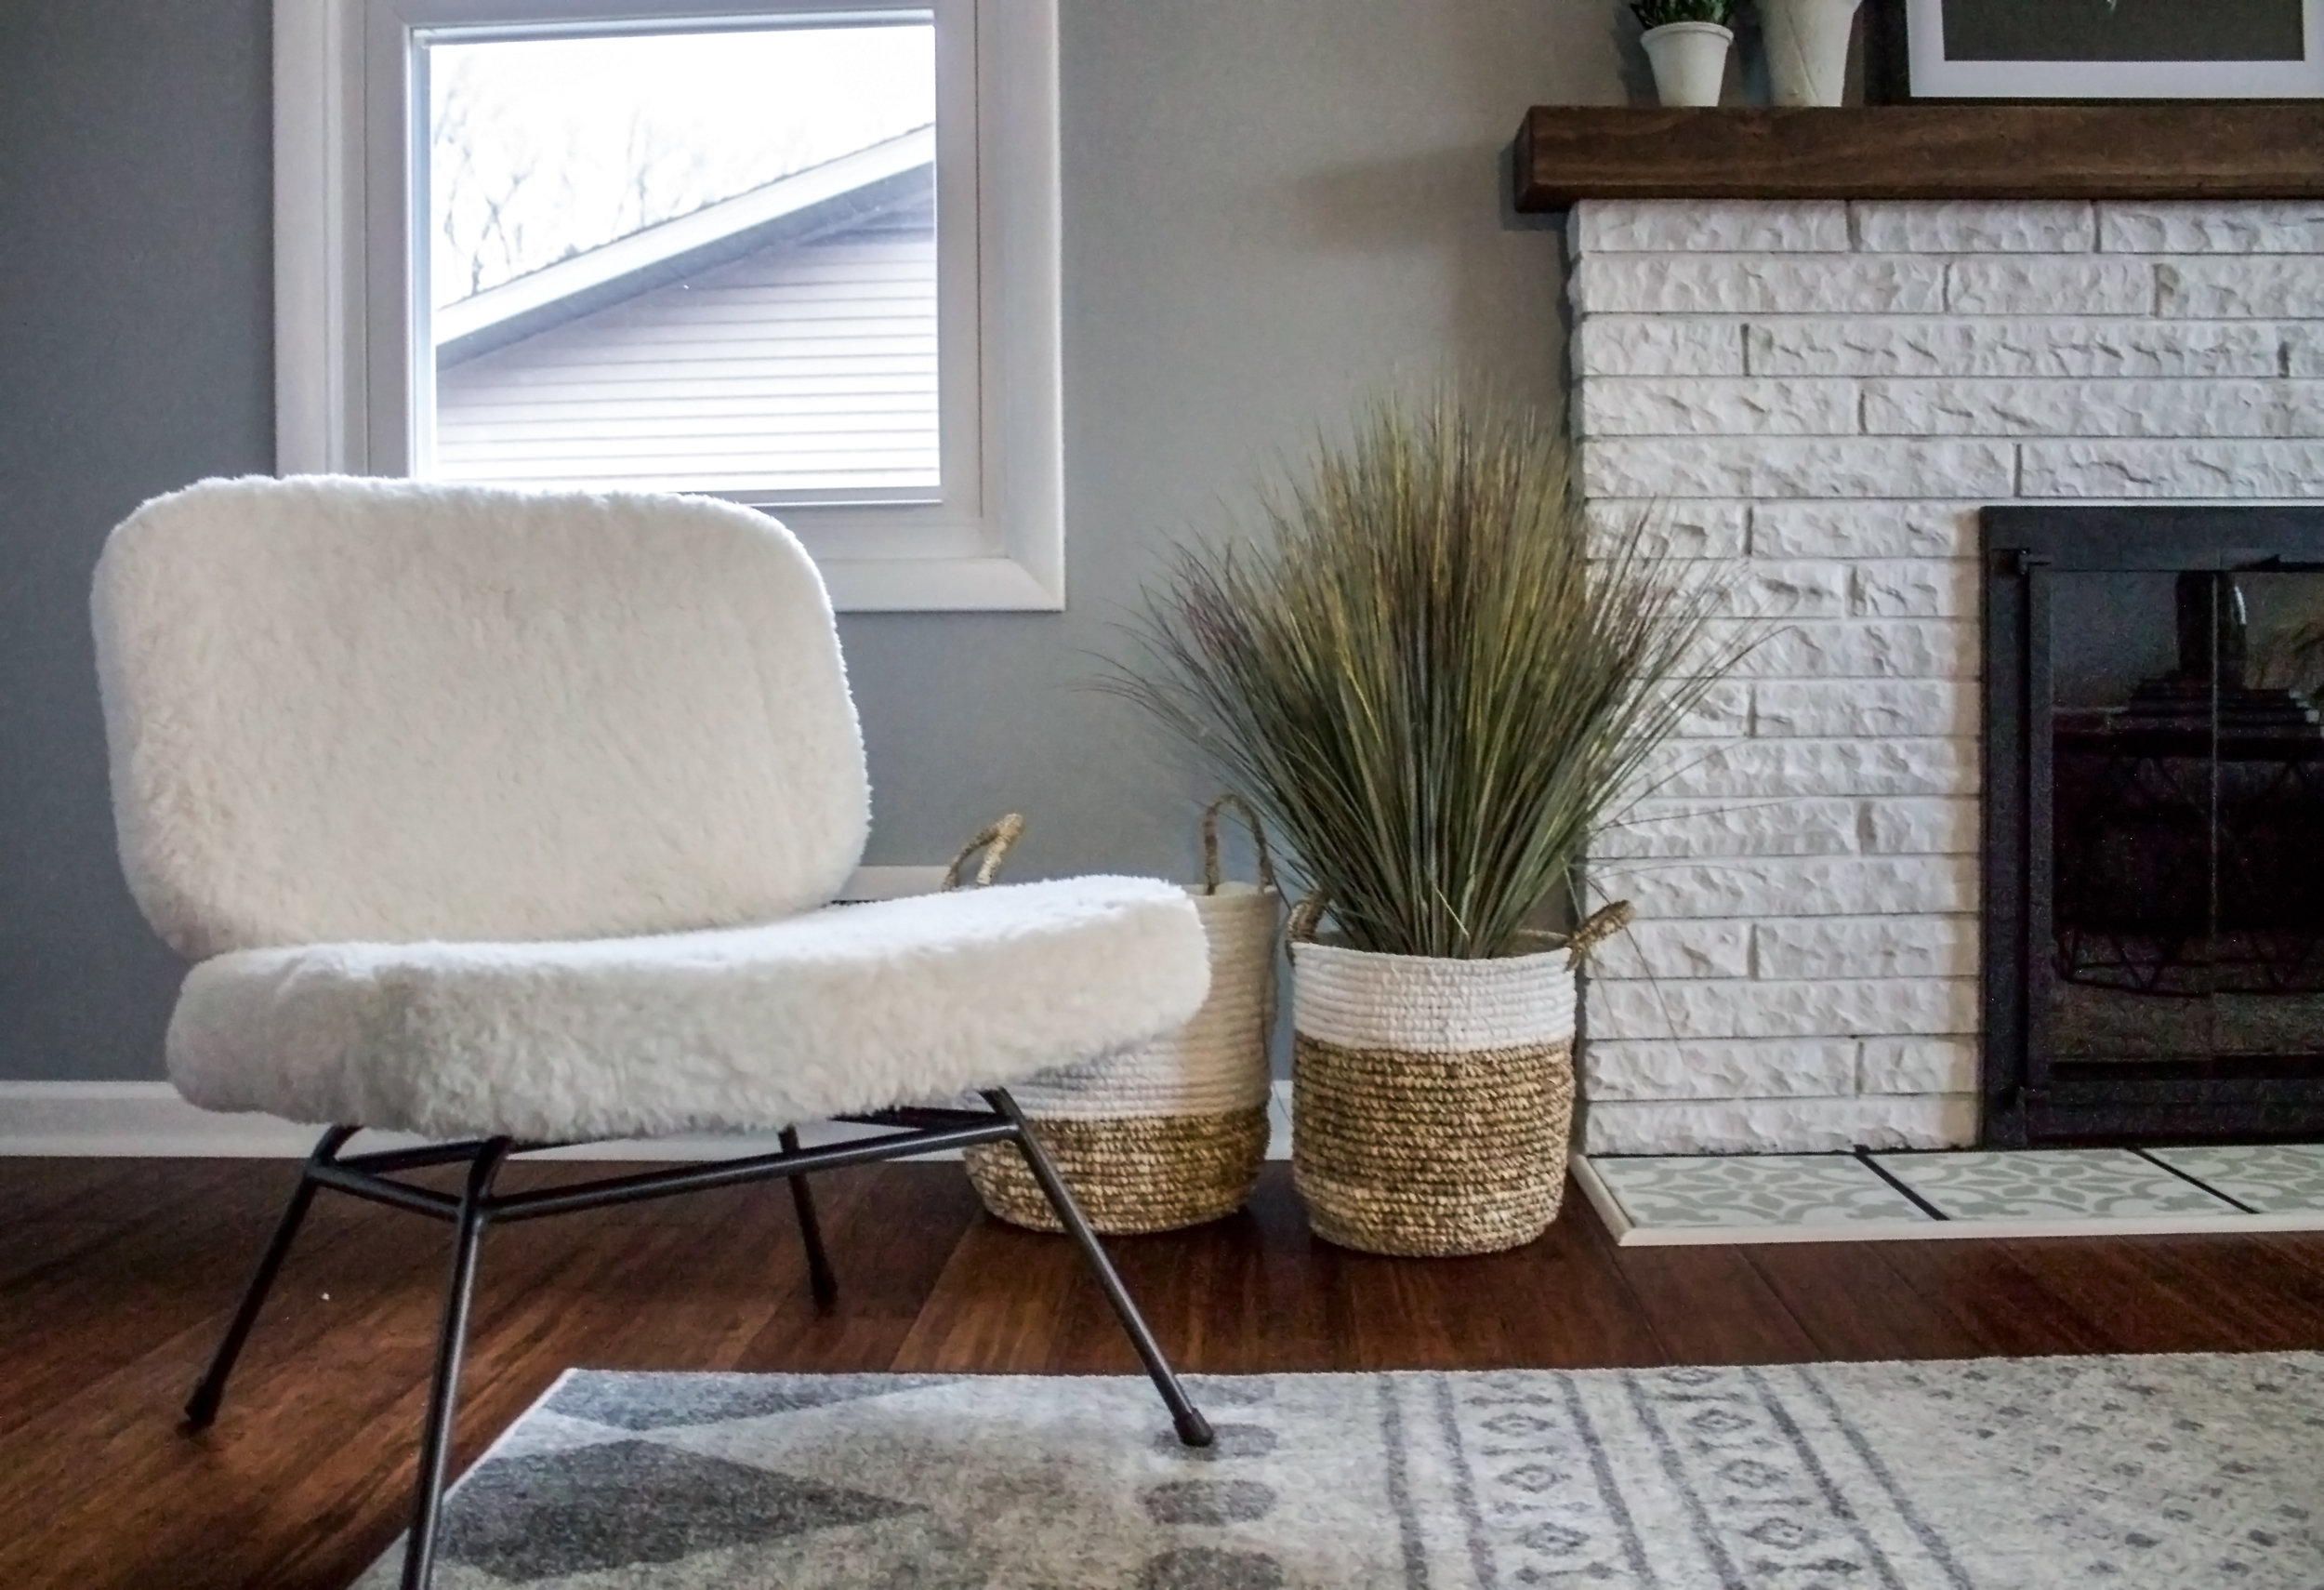 Caleb chair, white plush chair next to a white fireplace, trendy living room designed online, abbreviated design provides online interior design services in Grand Rapids Michigan,